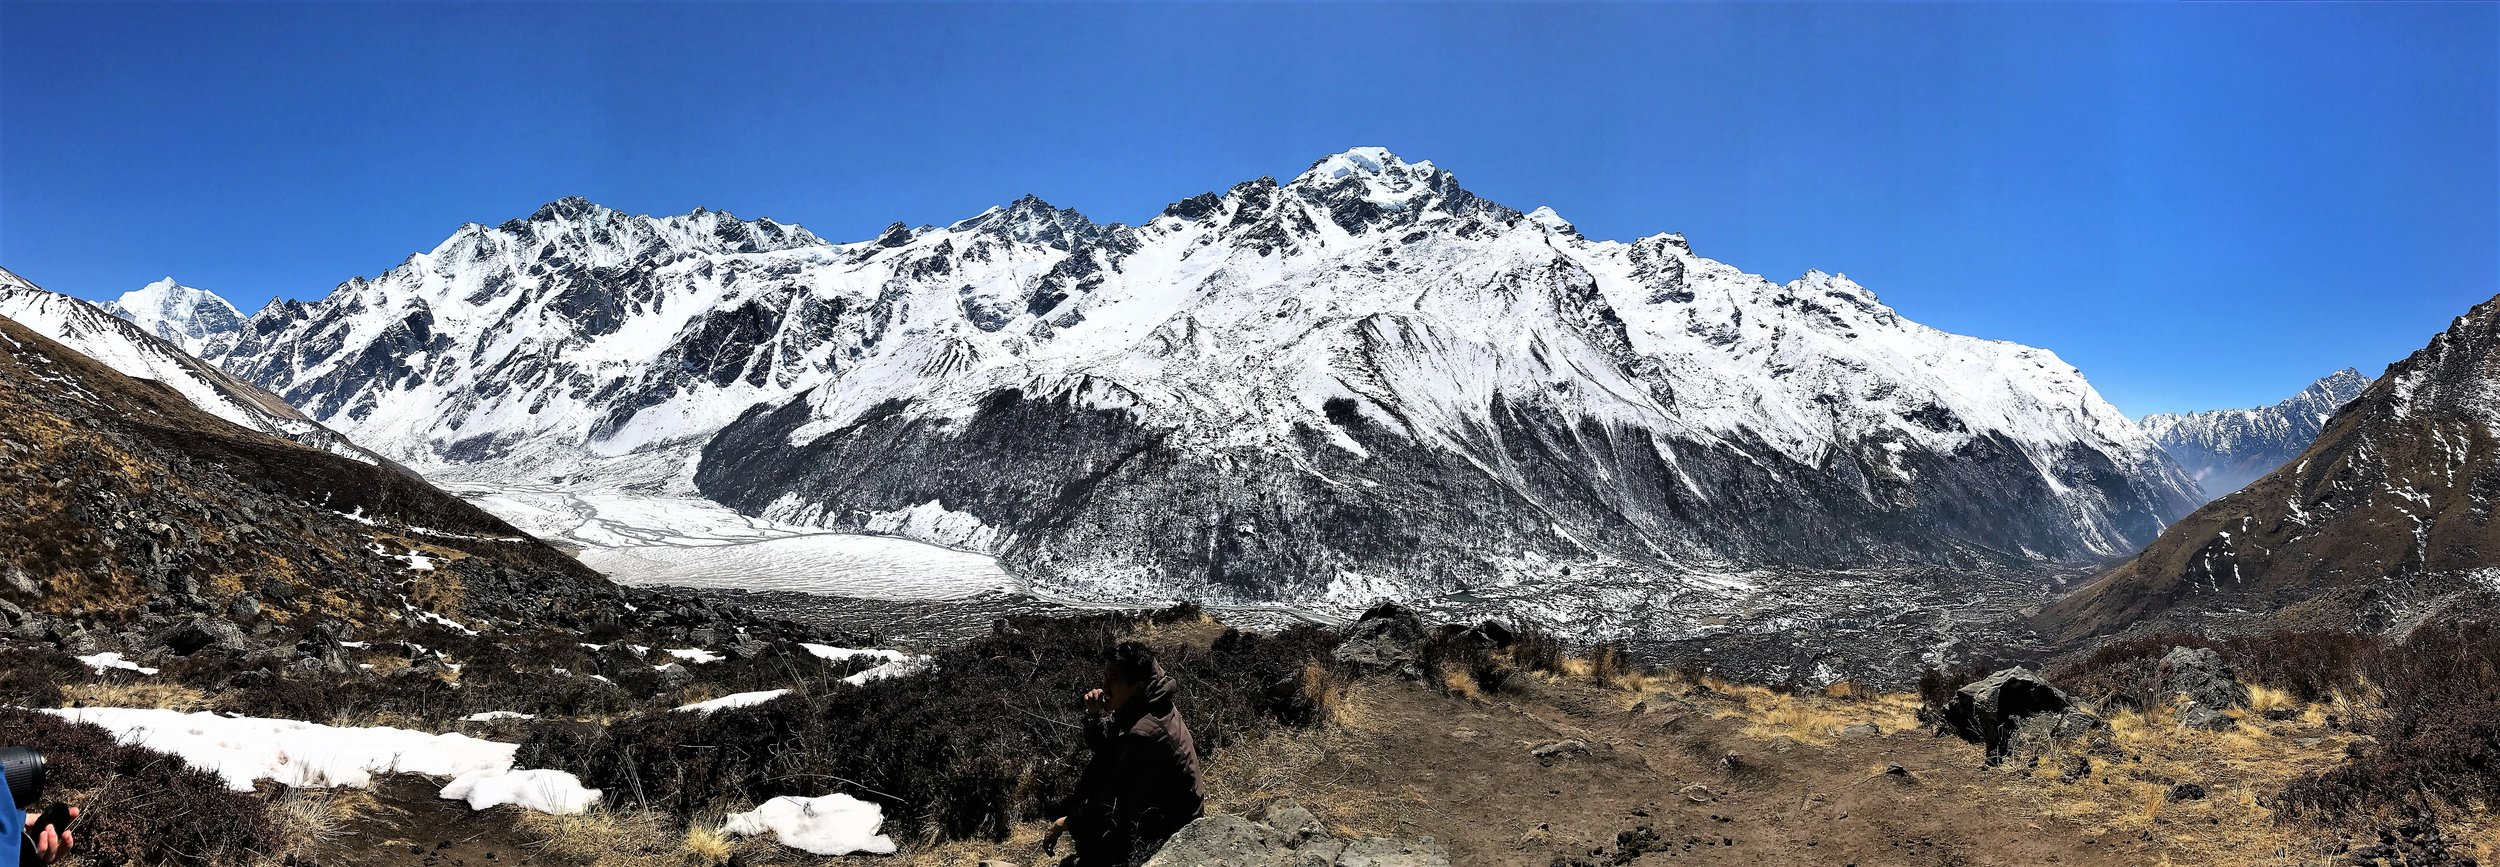 Panorama of Langtang Valley from Kyangin Ri